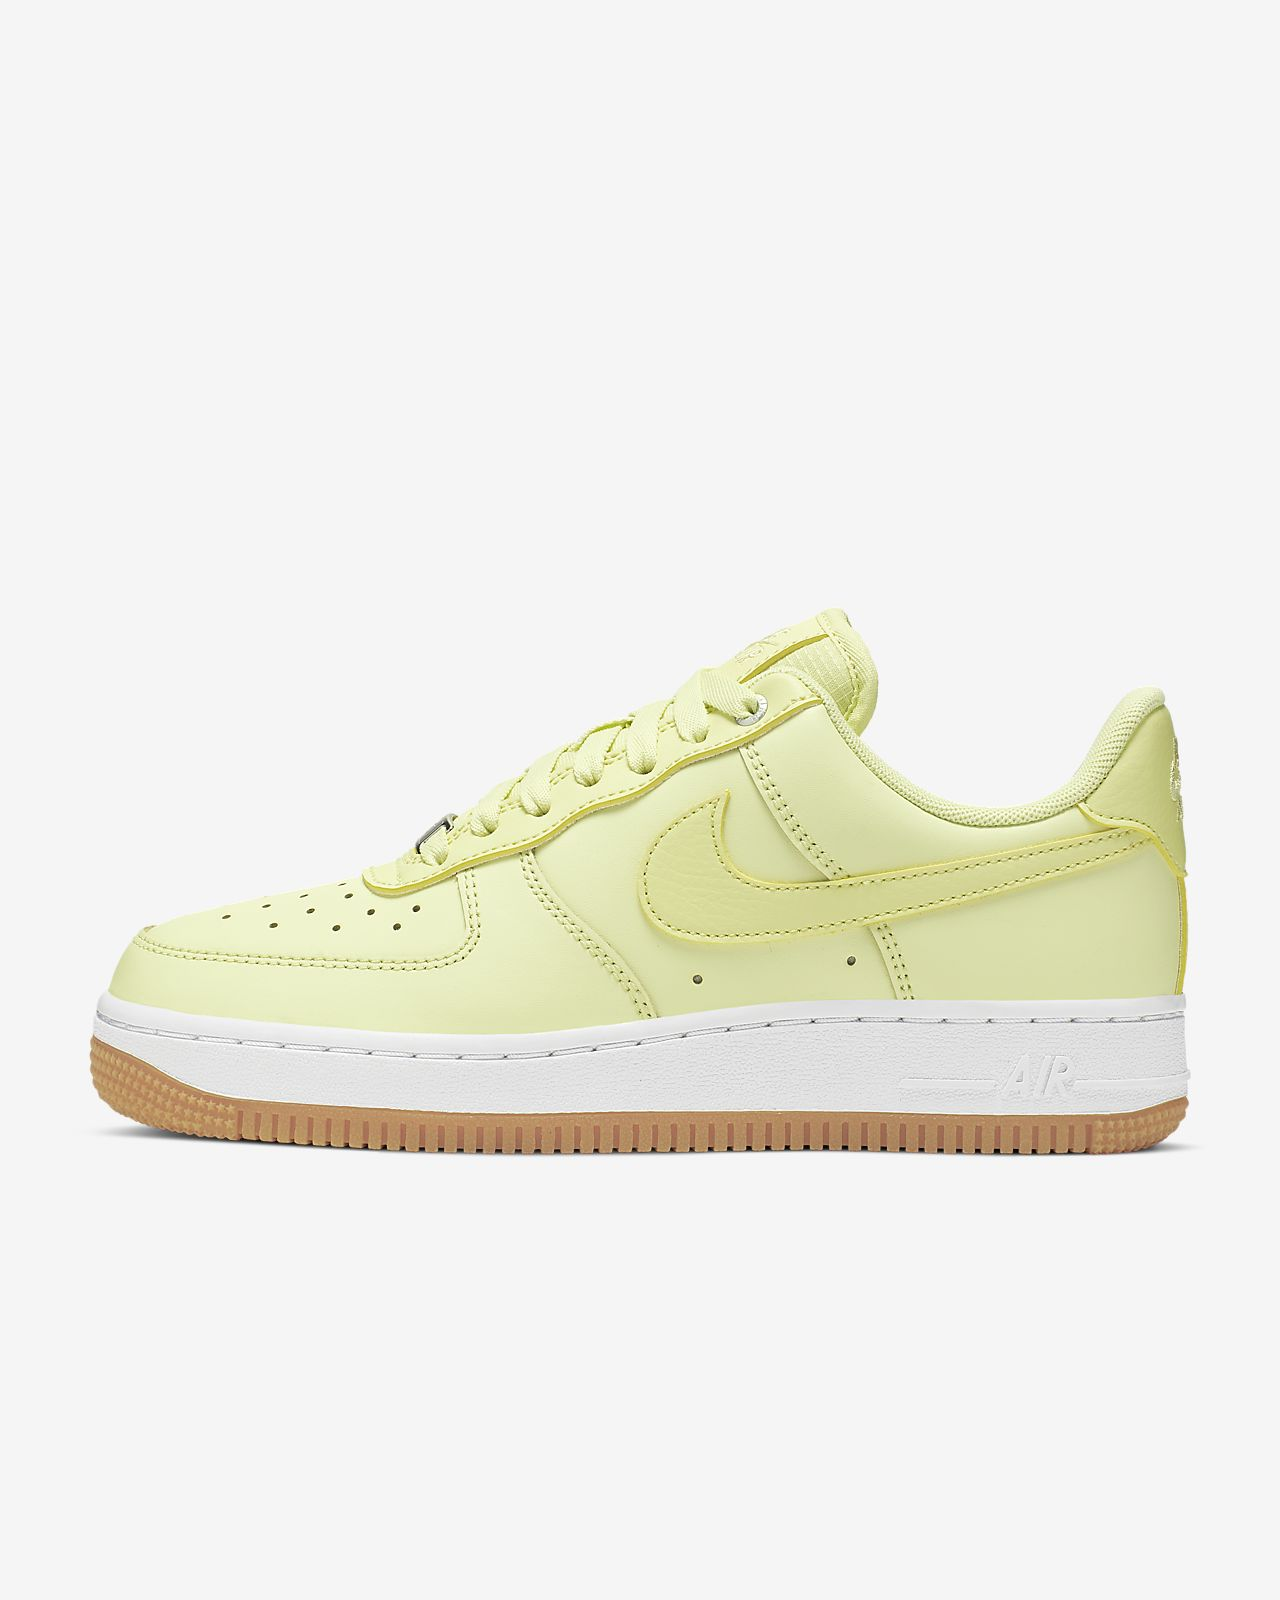 Zapatillas Nike Air Force 1 '07 SE Premium | Rosa